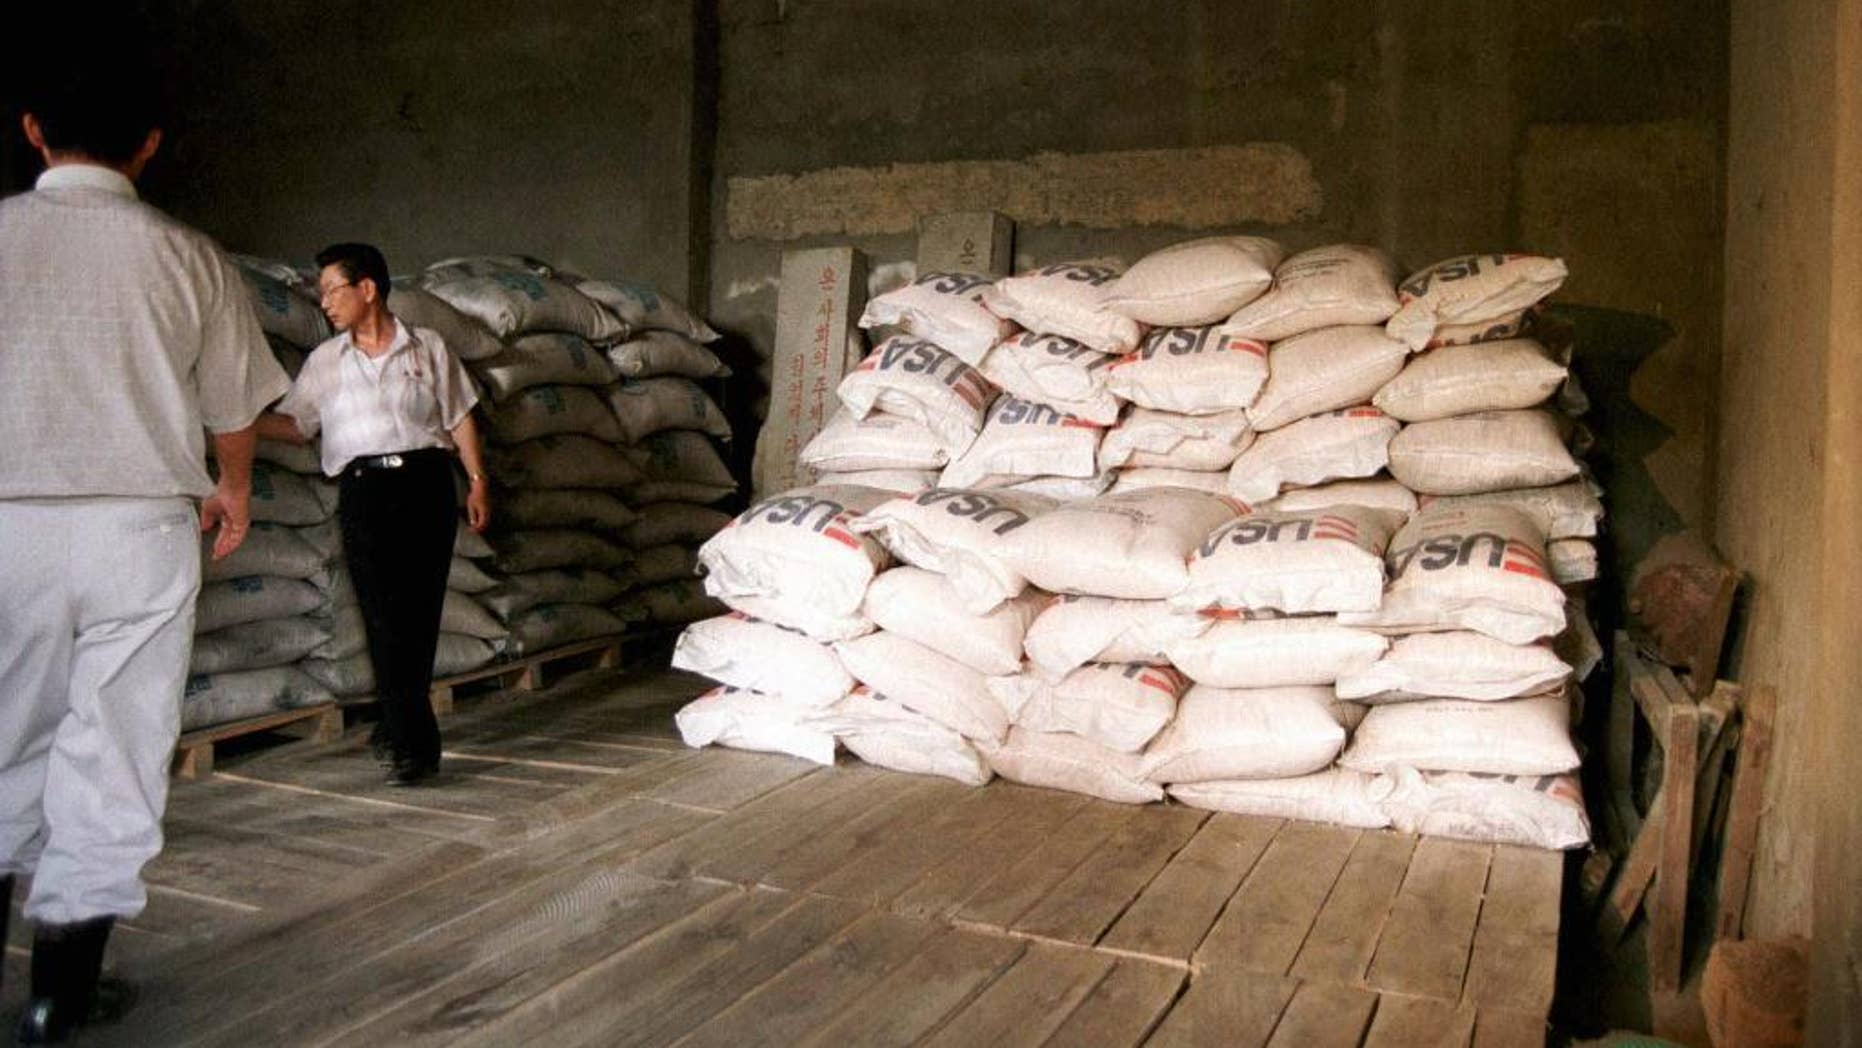 FILE - this June 26, 1997 file photo shows bags of cereal provided by the UN world food program at a corner of an almost empty warehouse used as a food storage in Hui Chon County, 200 kilometers (125 miles) northwest of Pyongyang. The U.N. agency that has provided food aid to North Korea for nearly two decades says it has enough donations to stay open for the rest of this year but is uncertain whether it will be able to operate there beyond next March. (AP Photo/UN, James Bu)